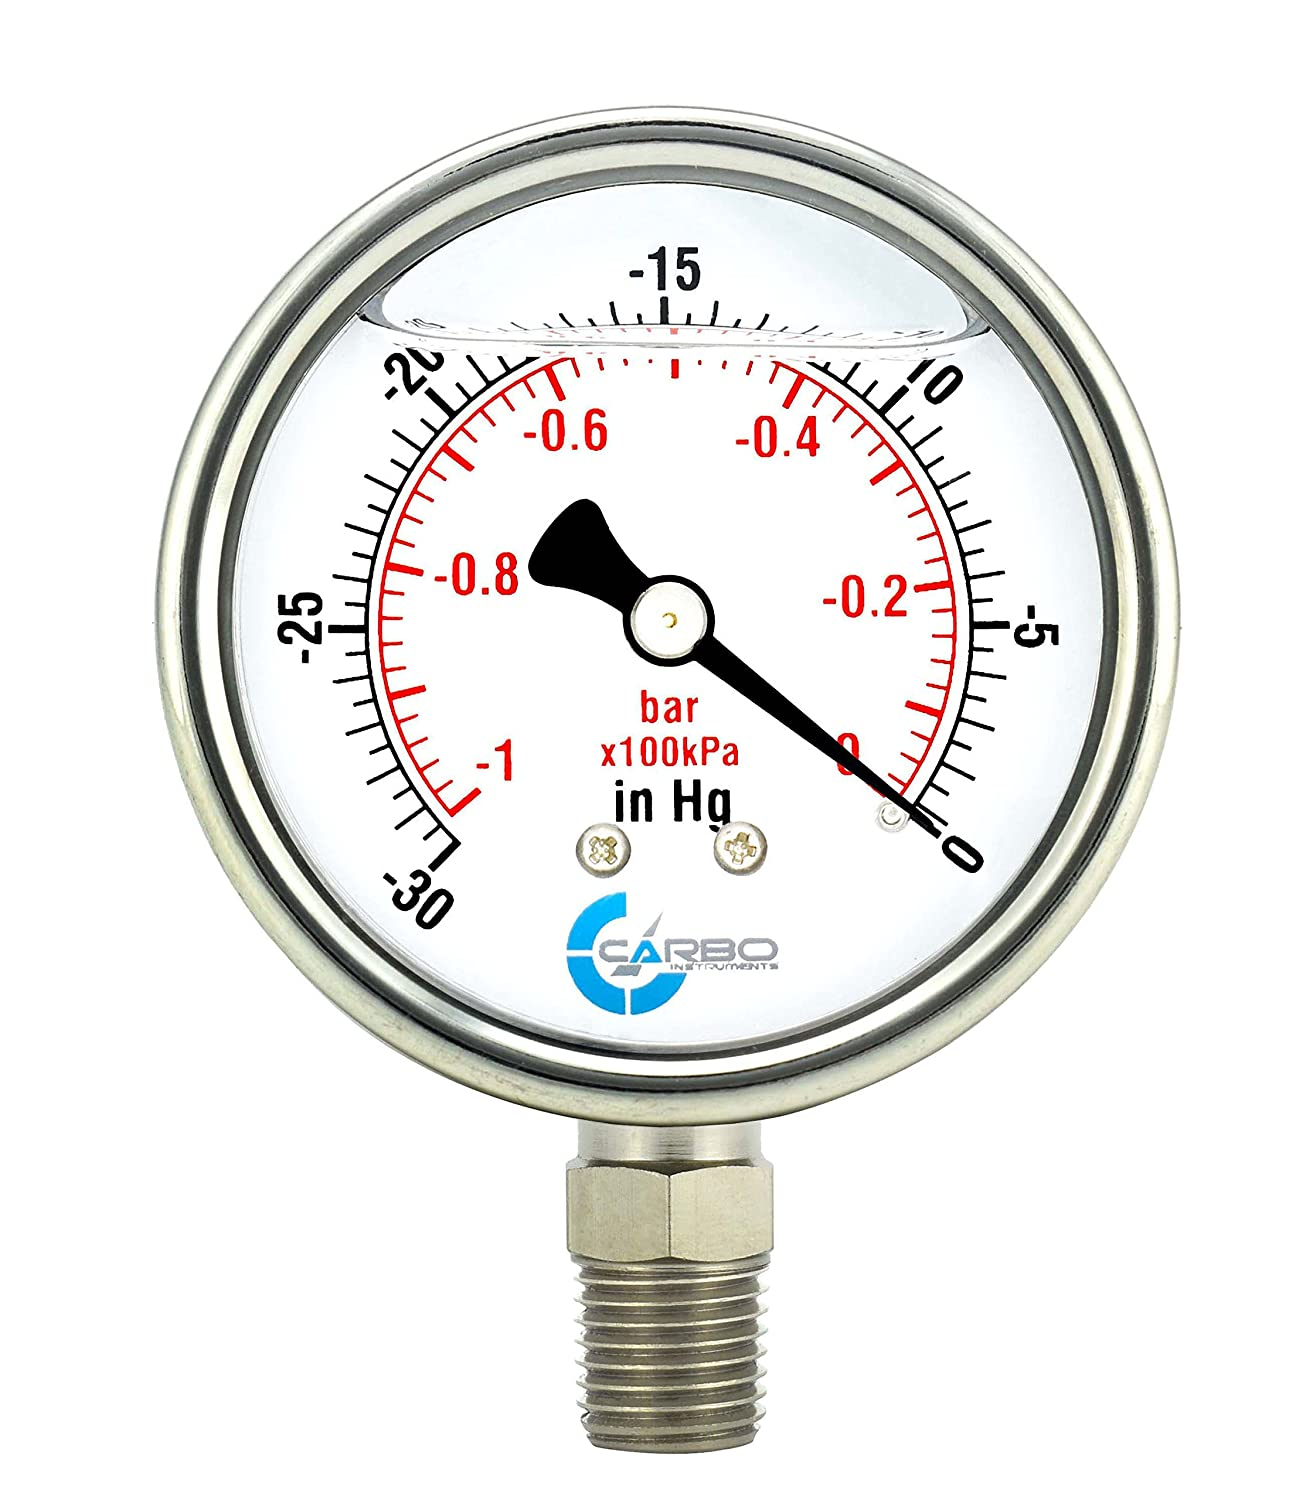 "CARBO Instruments 2 1-2"" Pressure Gauge, Stainless Steel Case, Chrome Plated Brass Connection, Lqiuid Filled, Vacuum -30 Hg/0, Lower Mount 1/4"" NPT"